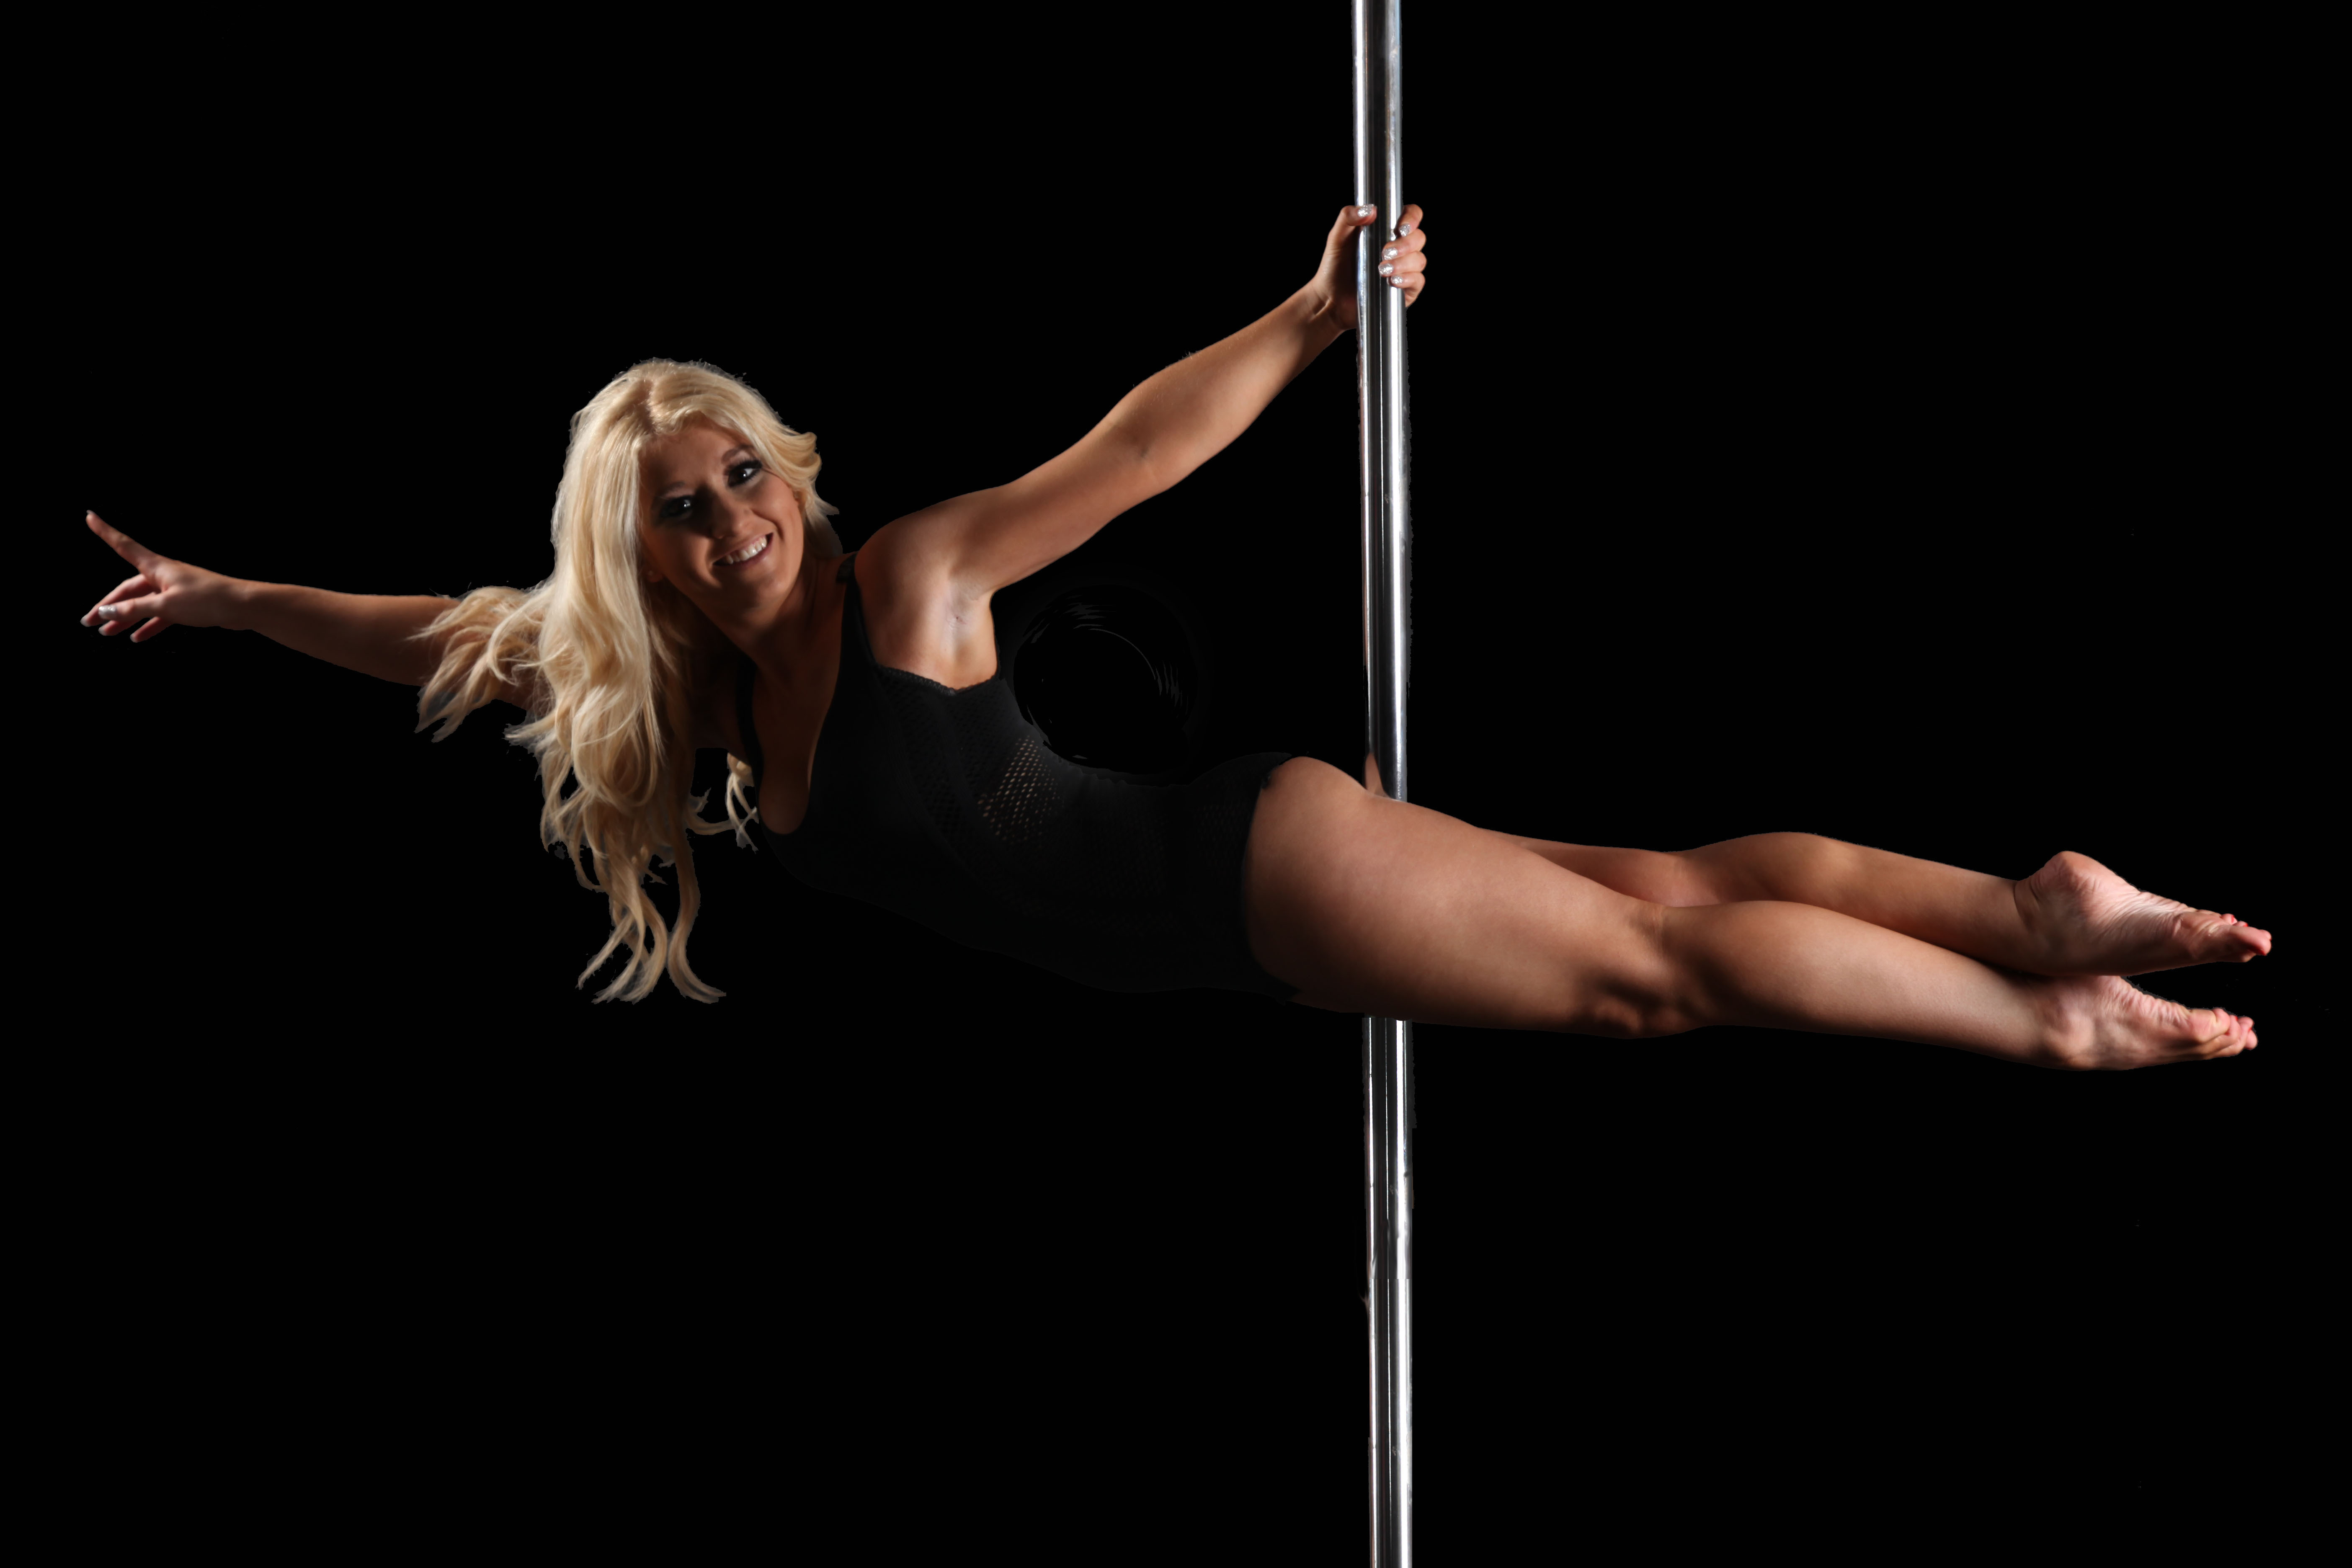 Pole Dancing In Las Vegas